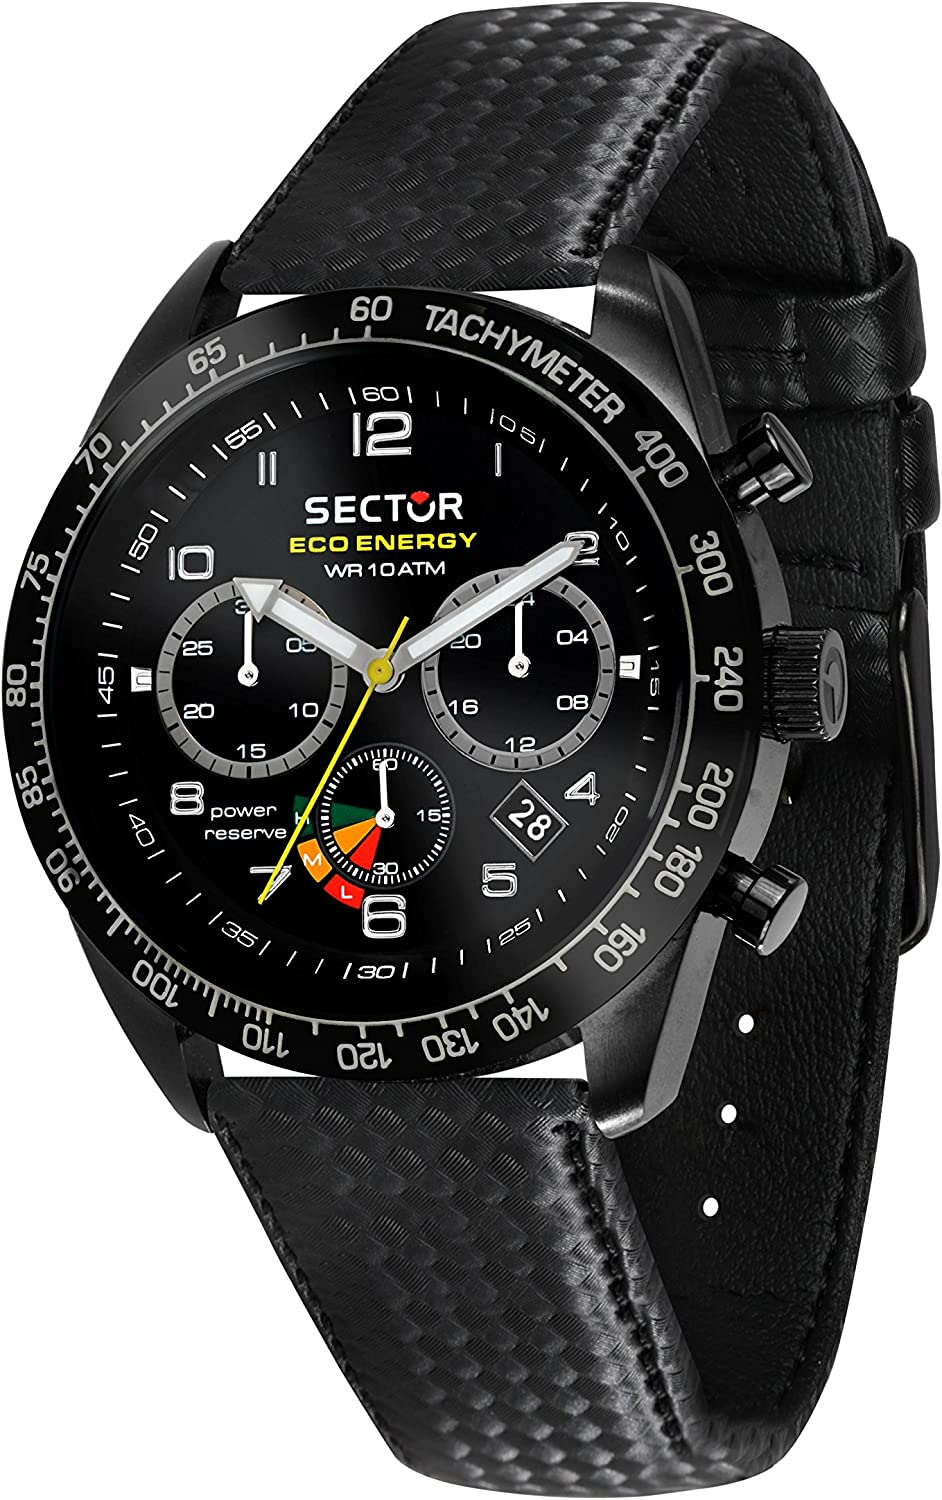 Sector No Limits Men s 695 Stainless Steel Automatic-self-Wind Sport Watch with Leather Strap, Black, 18 Model R3271613001